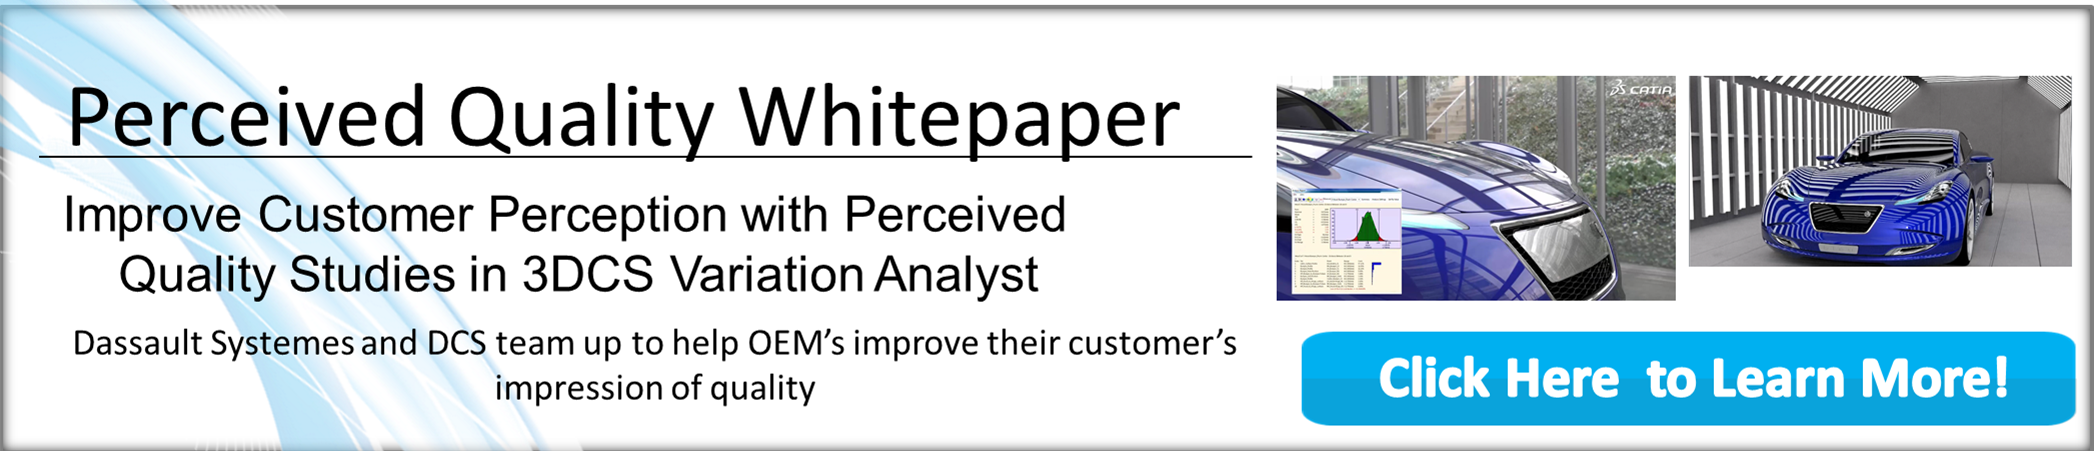 Download the Perceived Quality Whitepaper